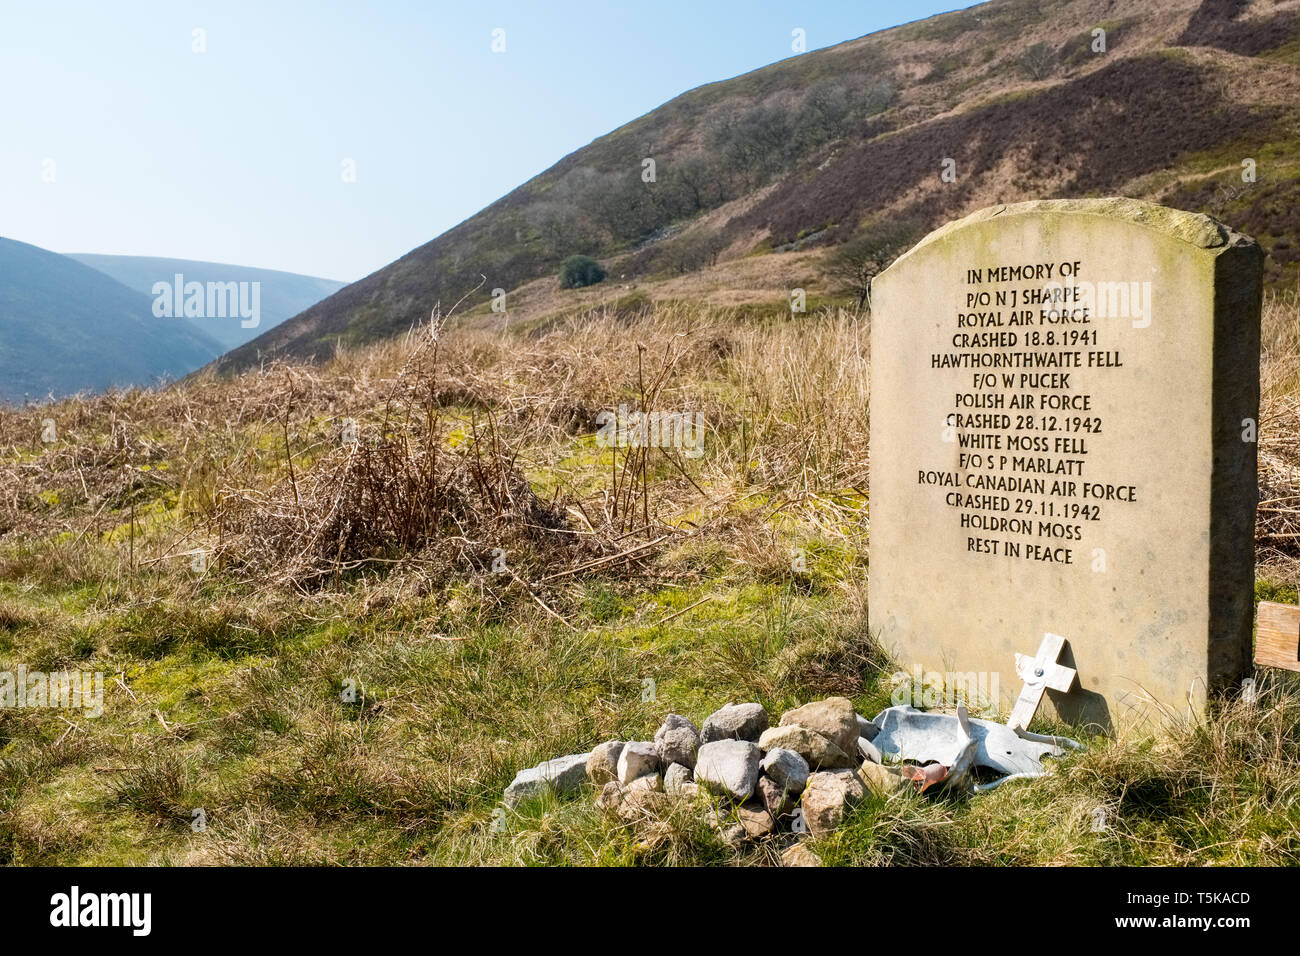 memorial to aircraft crew killed in crashes in WW2, Forest of Bowland,Lancashire,UK - Stock Image